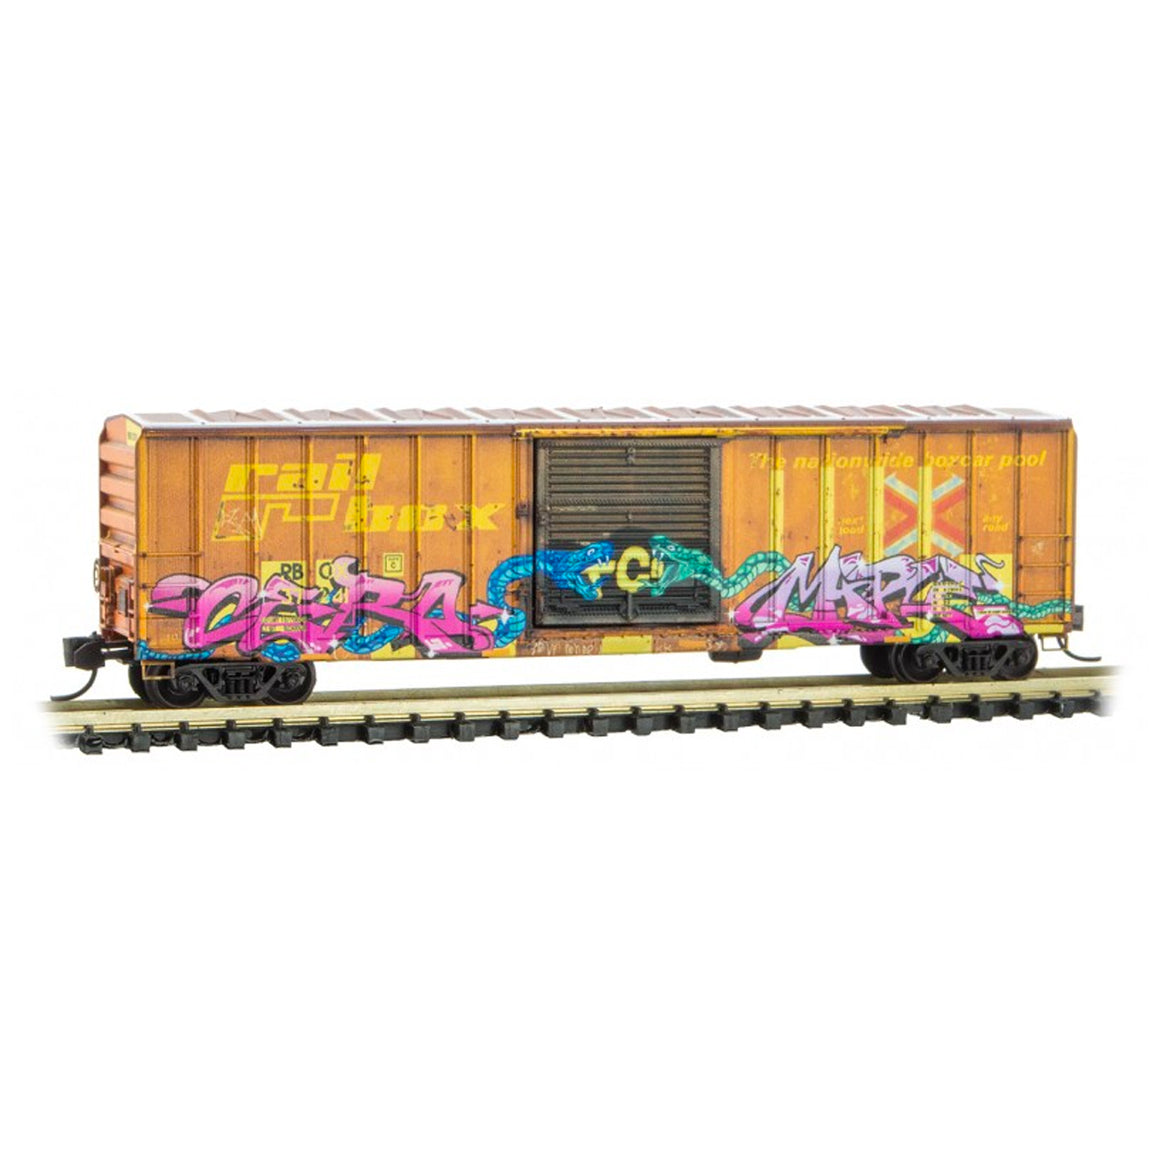 N Scale: 50' Rib Side Boxcar - Railbox 'Graffiti - National Pick Your Poison Day'